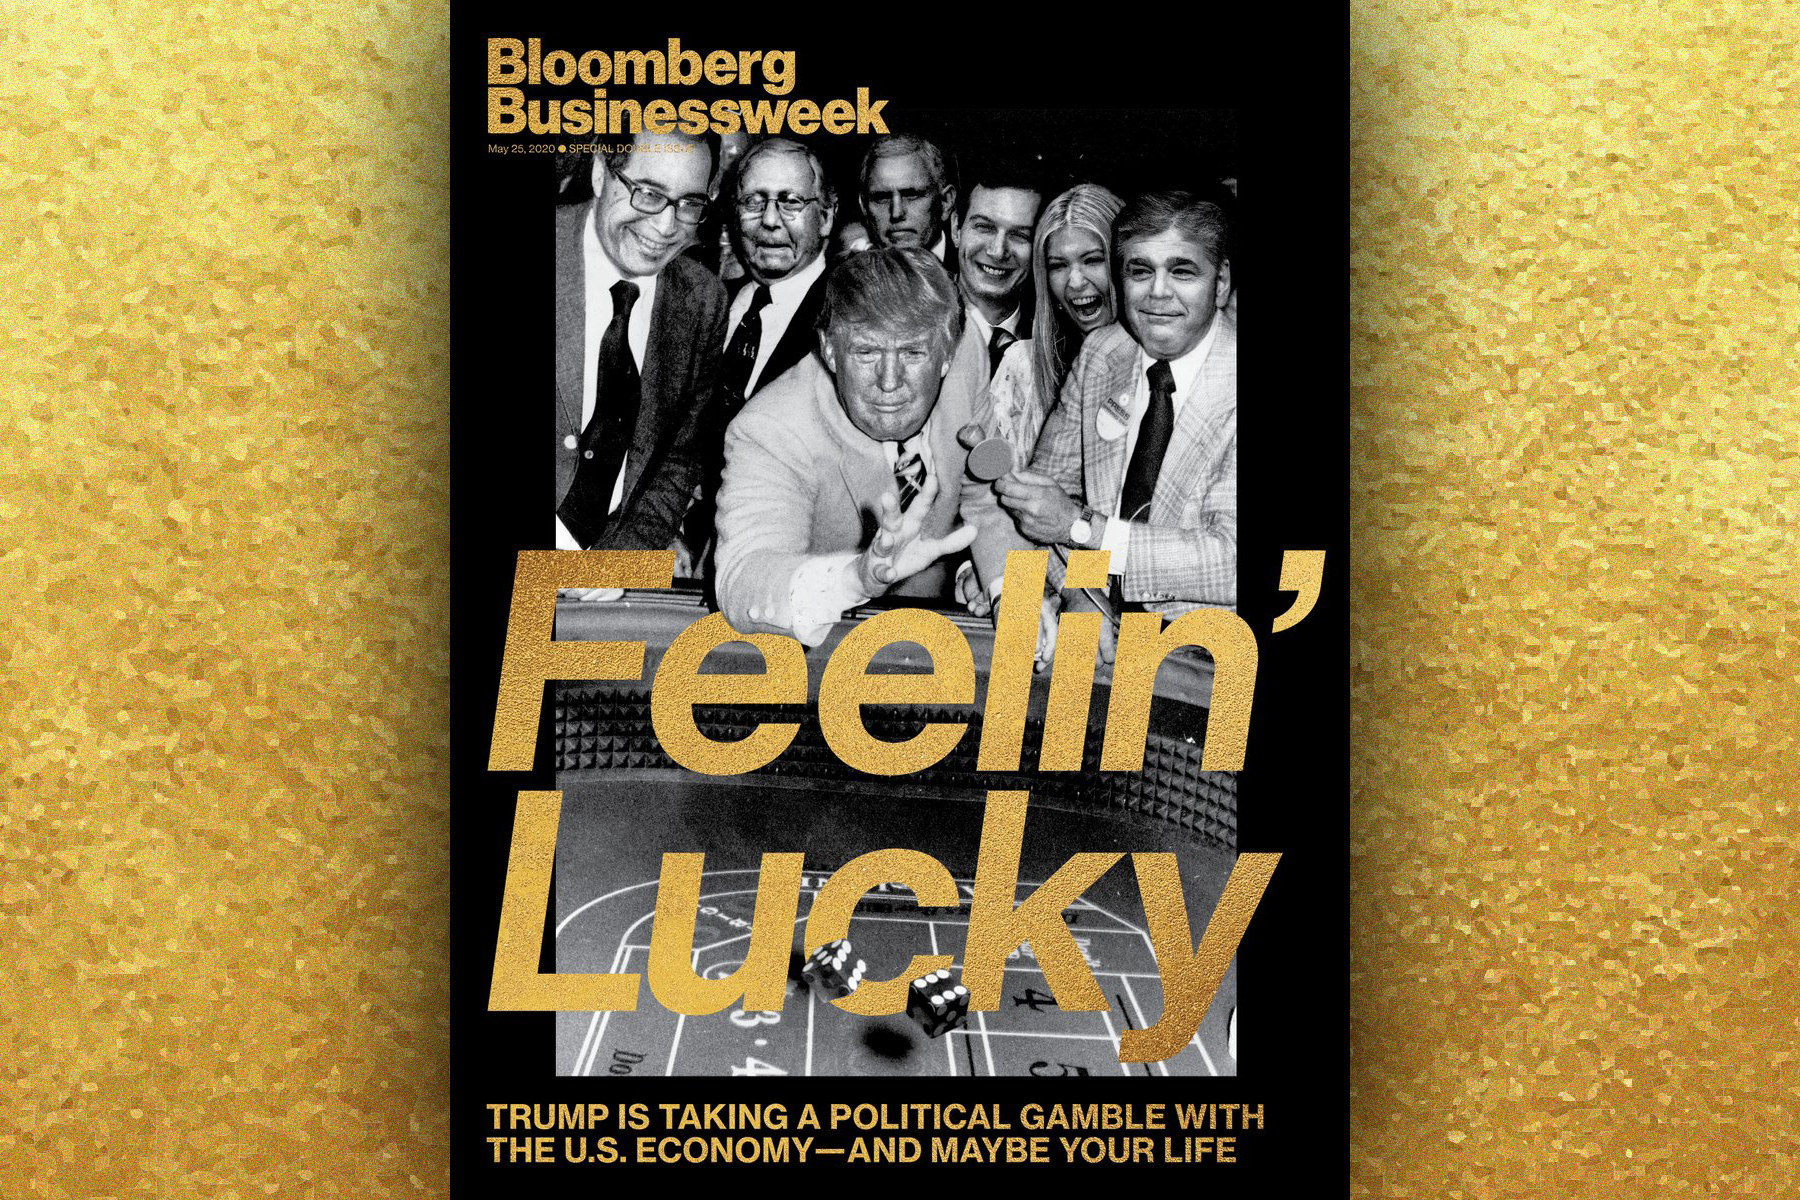 Trump is a gambling man on Bloomberg Businessweek's latest cover